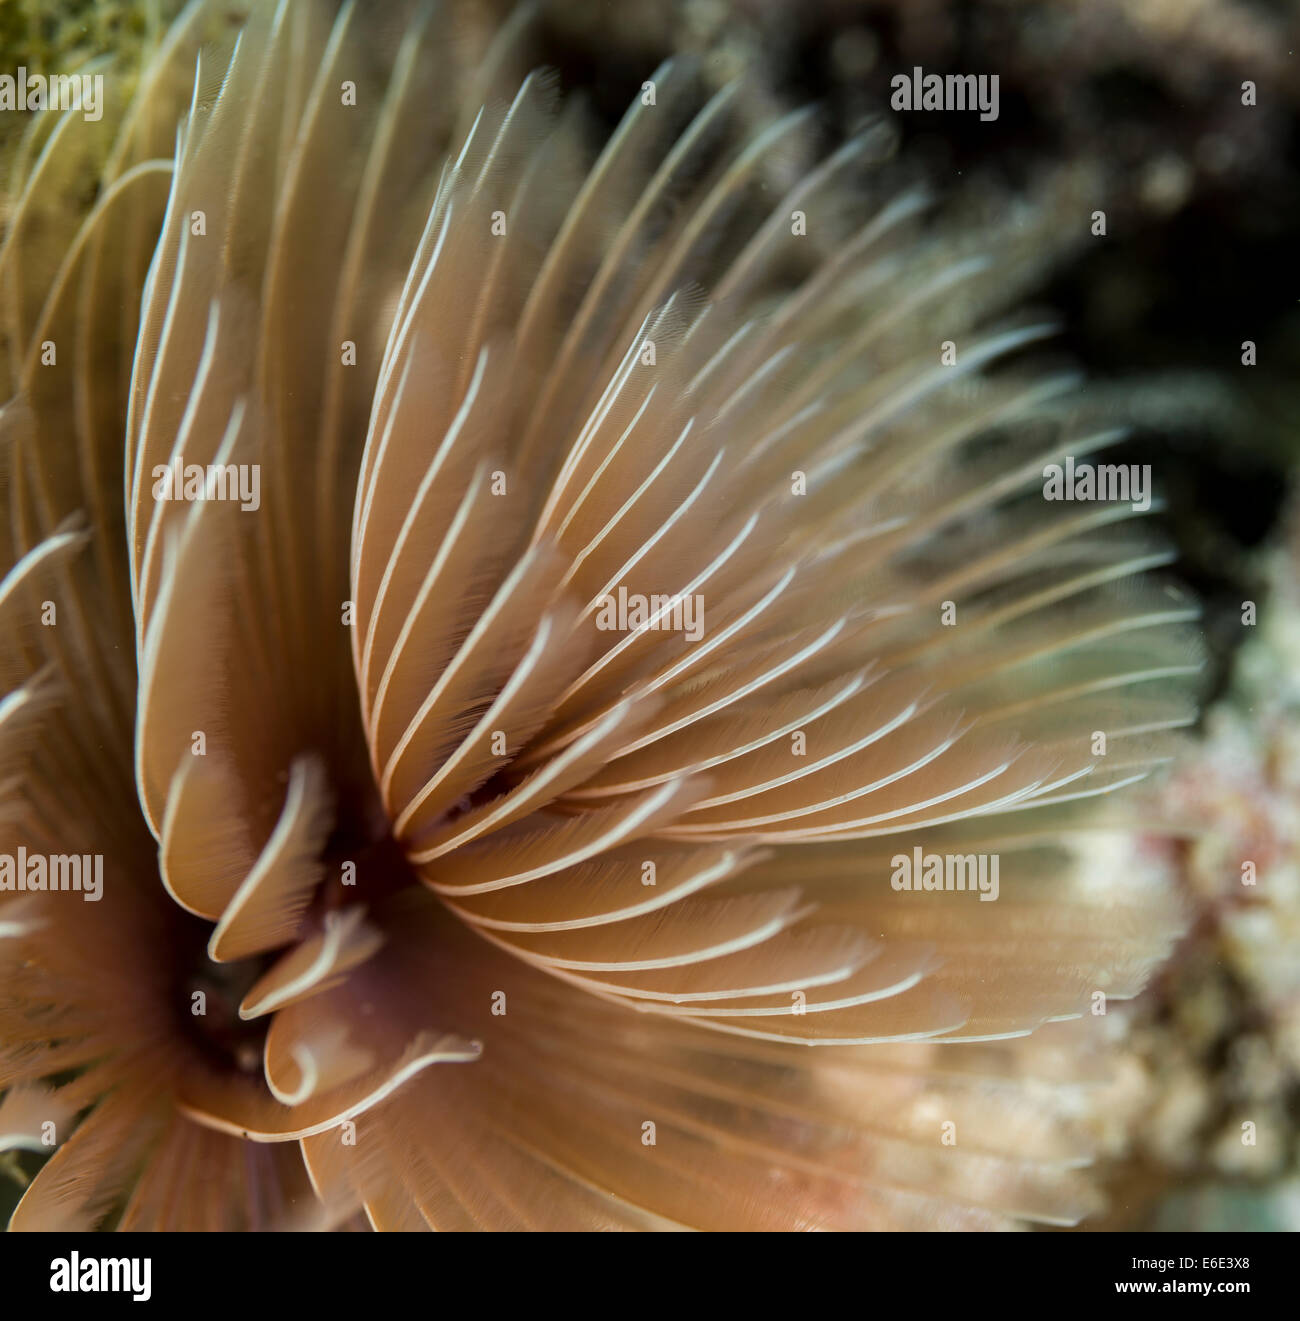 Detail of a tube anemone - Stock Image